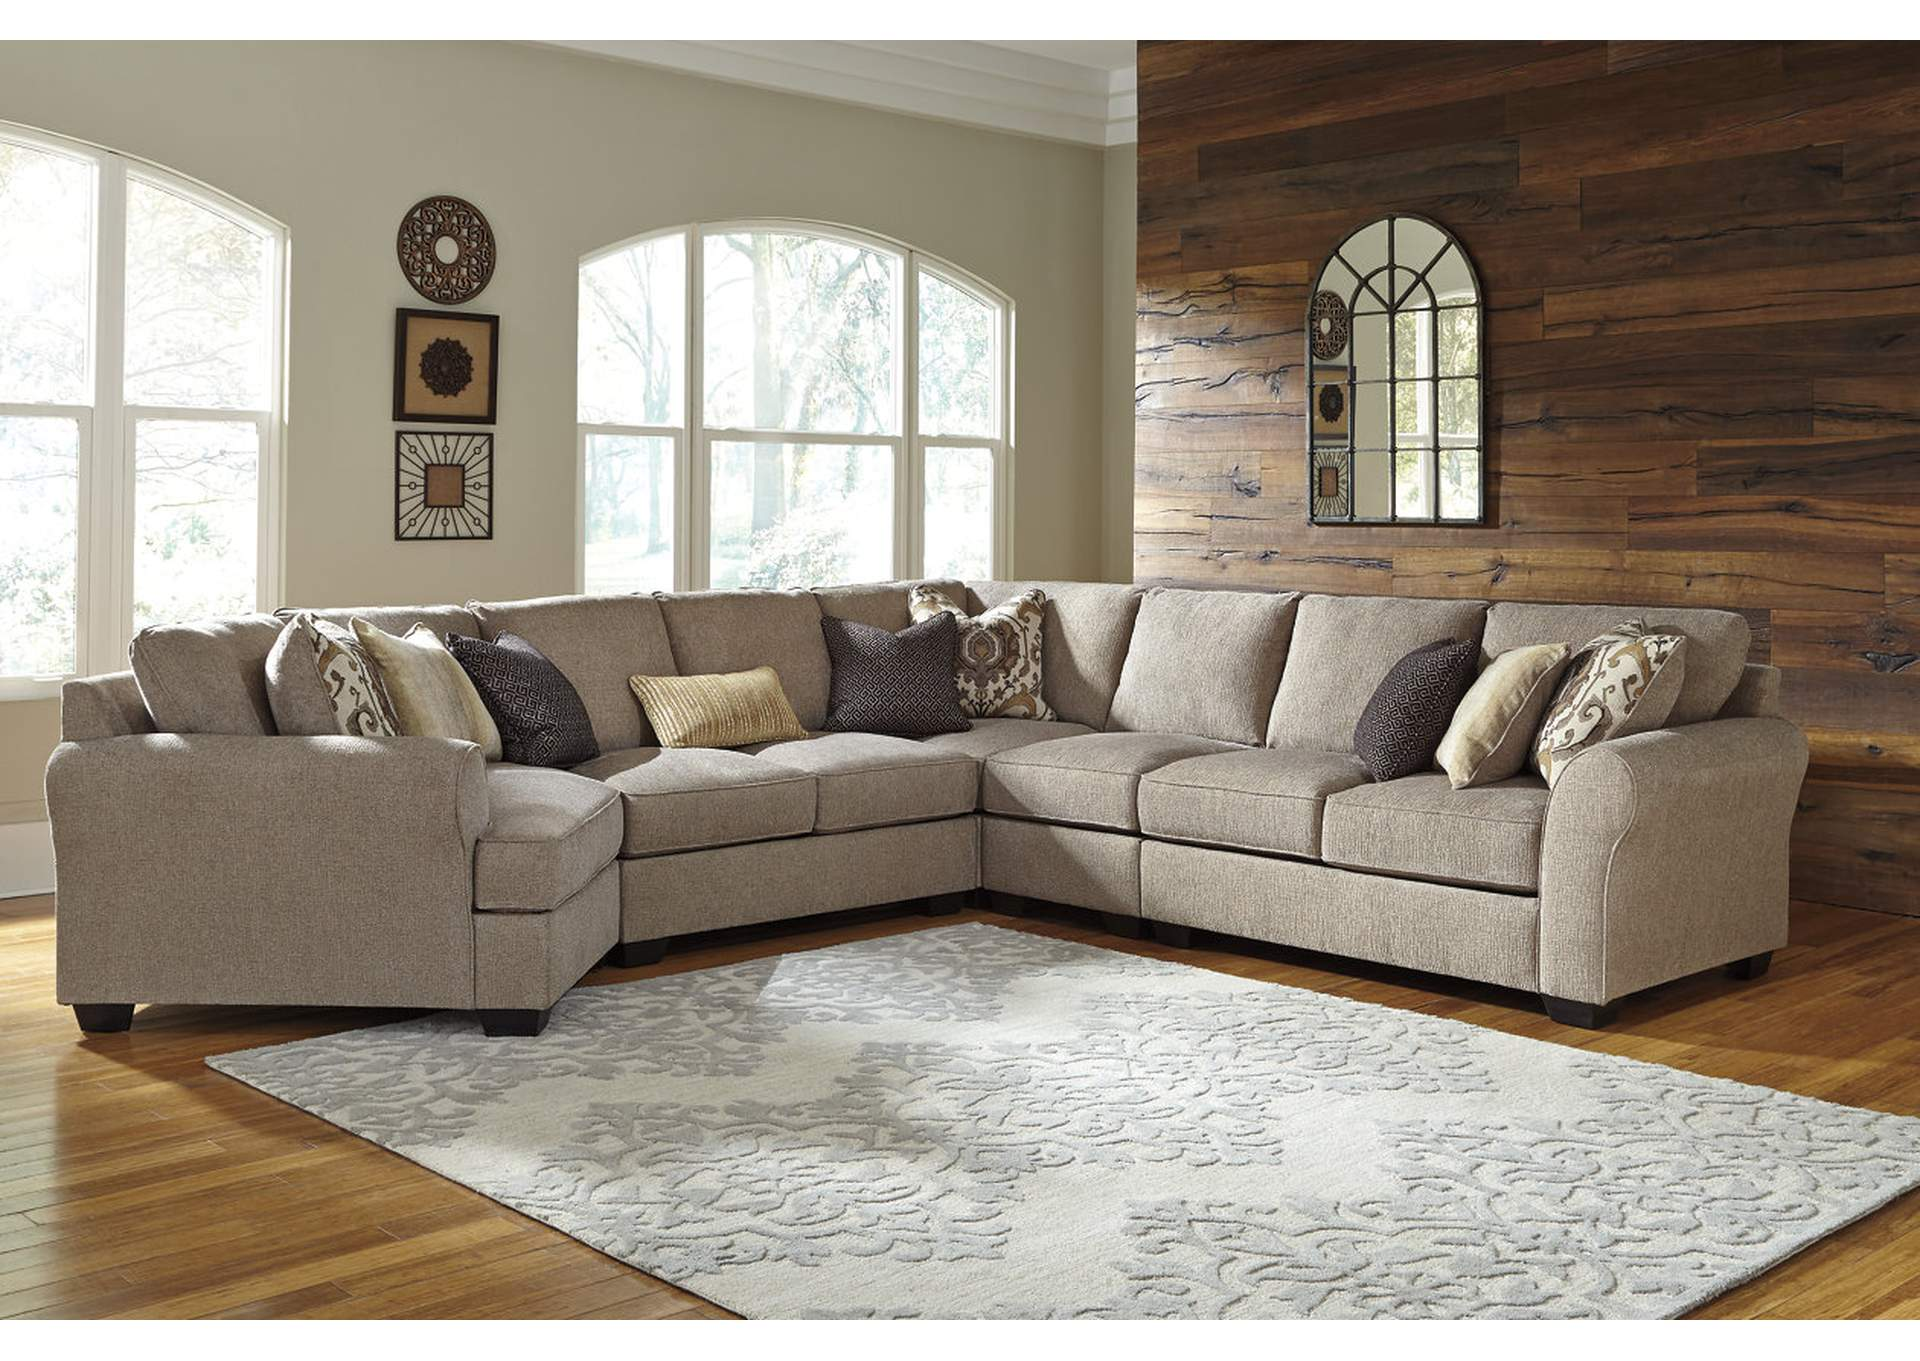 Pantomine Driftwood 5 Piece LAF Cuddler Sectional,Benchcraft